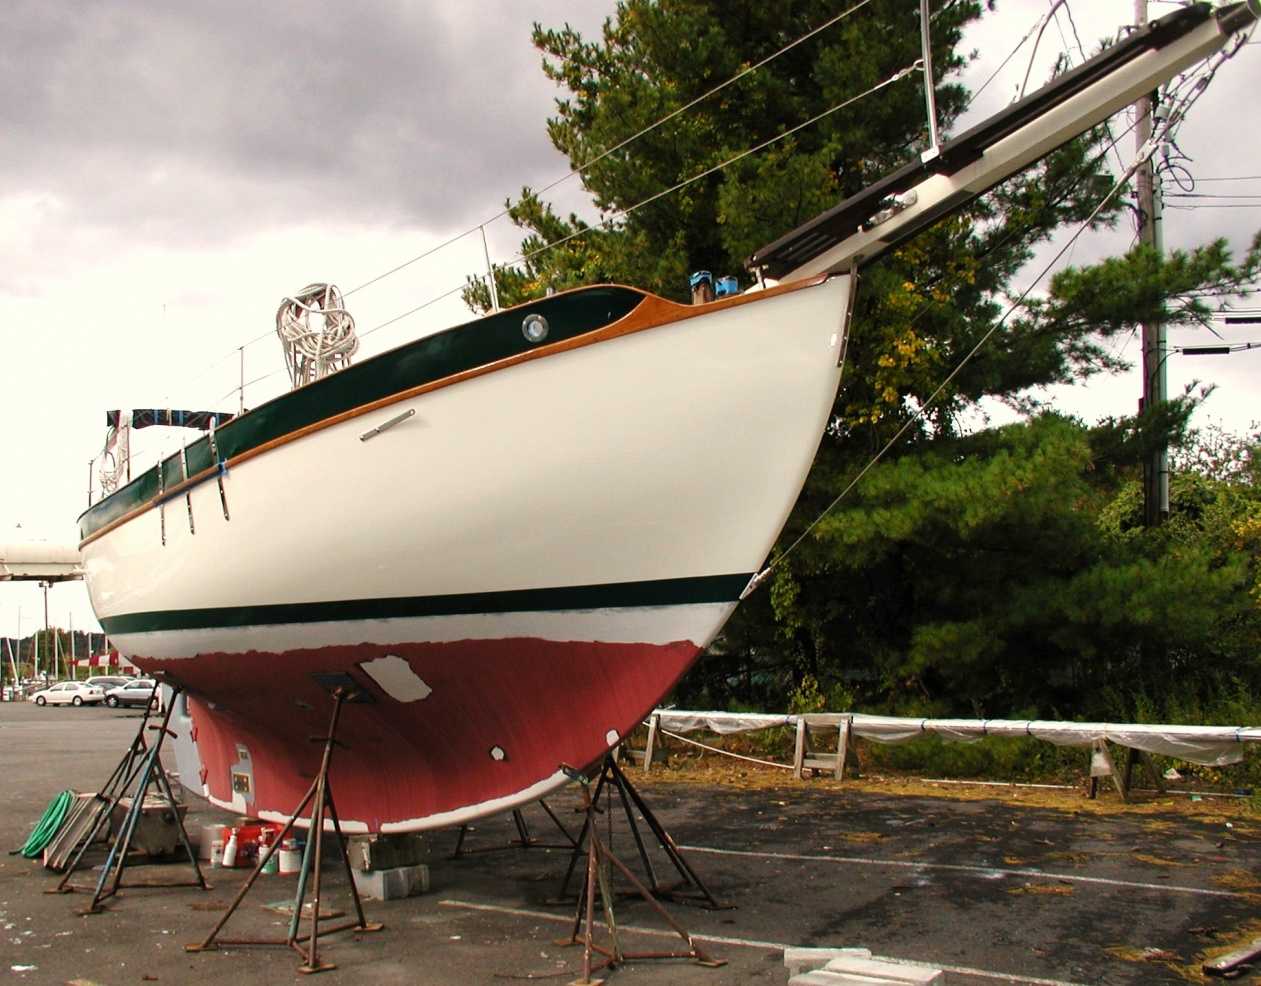 Click image for larger version  Name:This Old Boat.jpg Views:88 Size:446.5 KB ID:20969